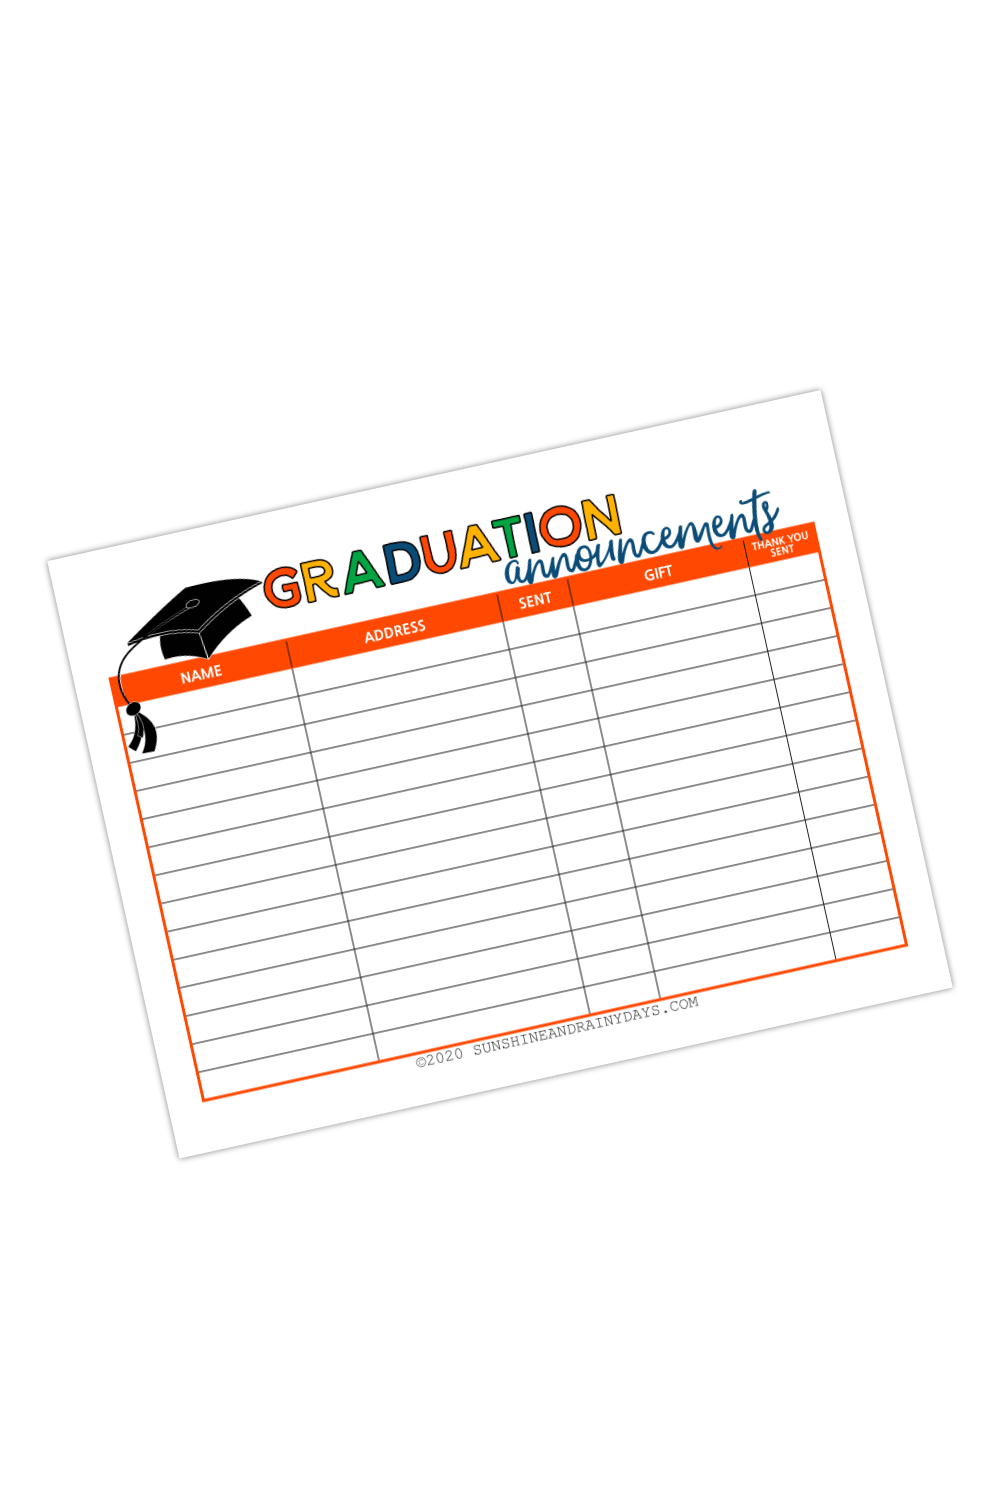 Graduation Announcements Sent To List (PDF)